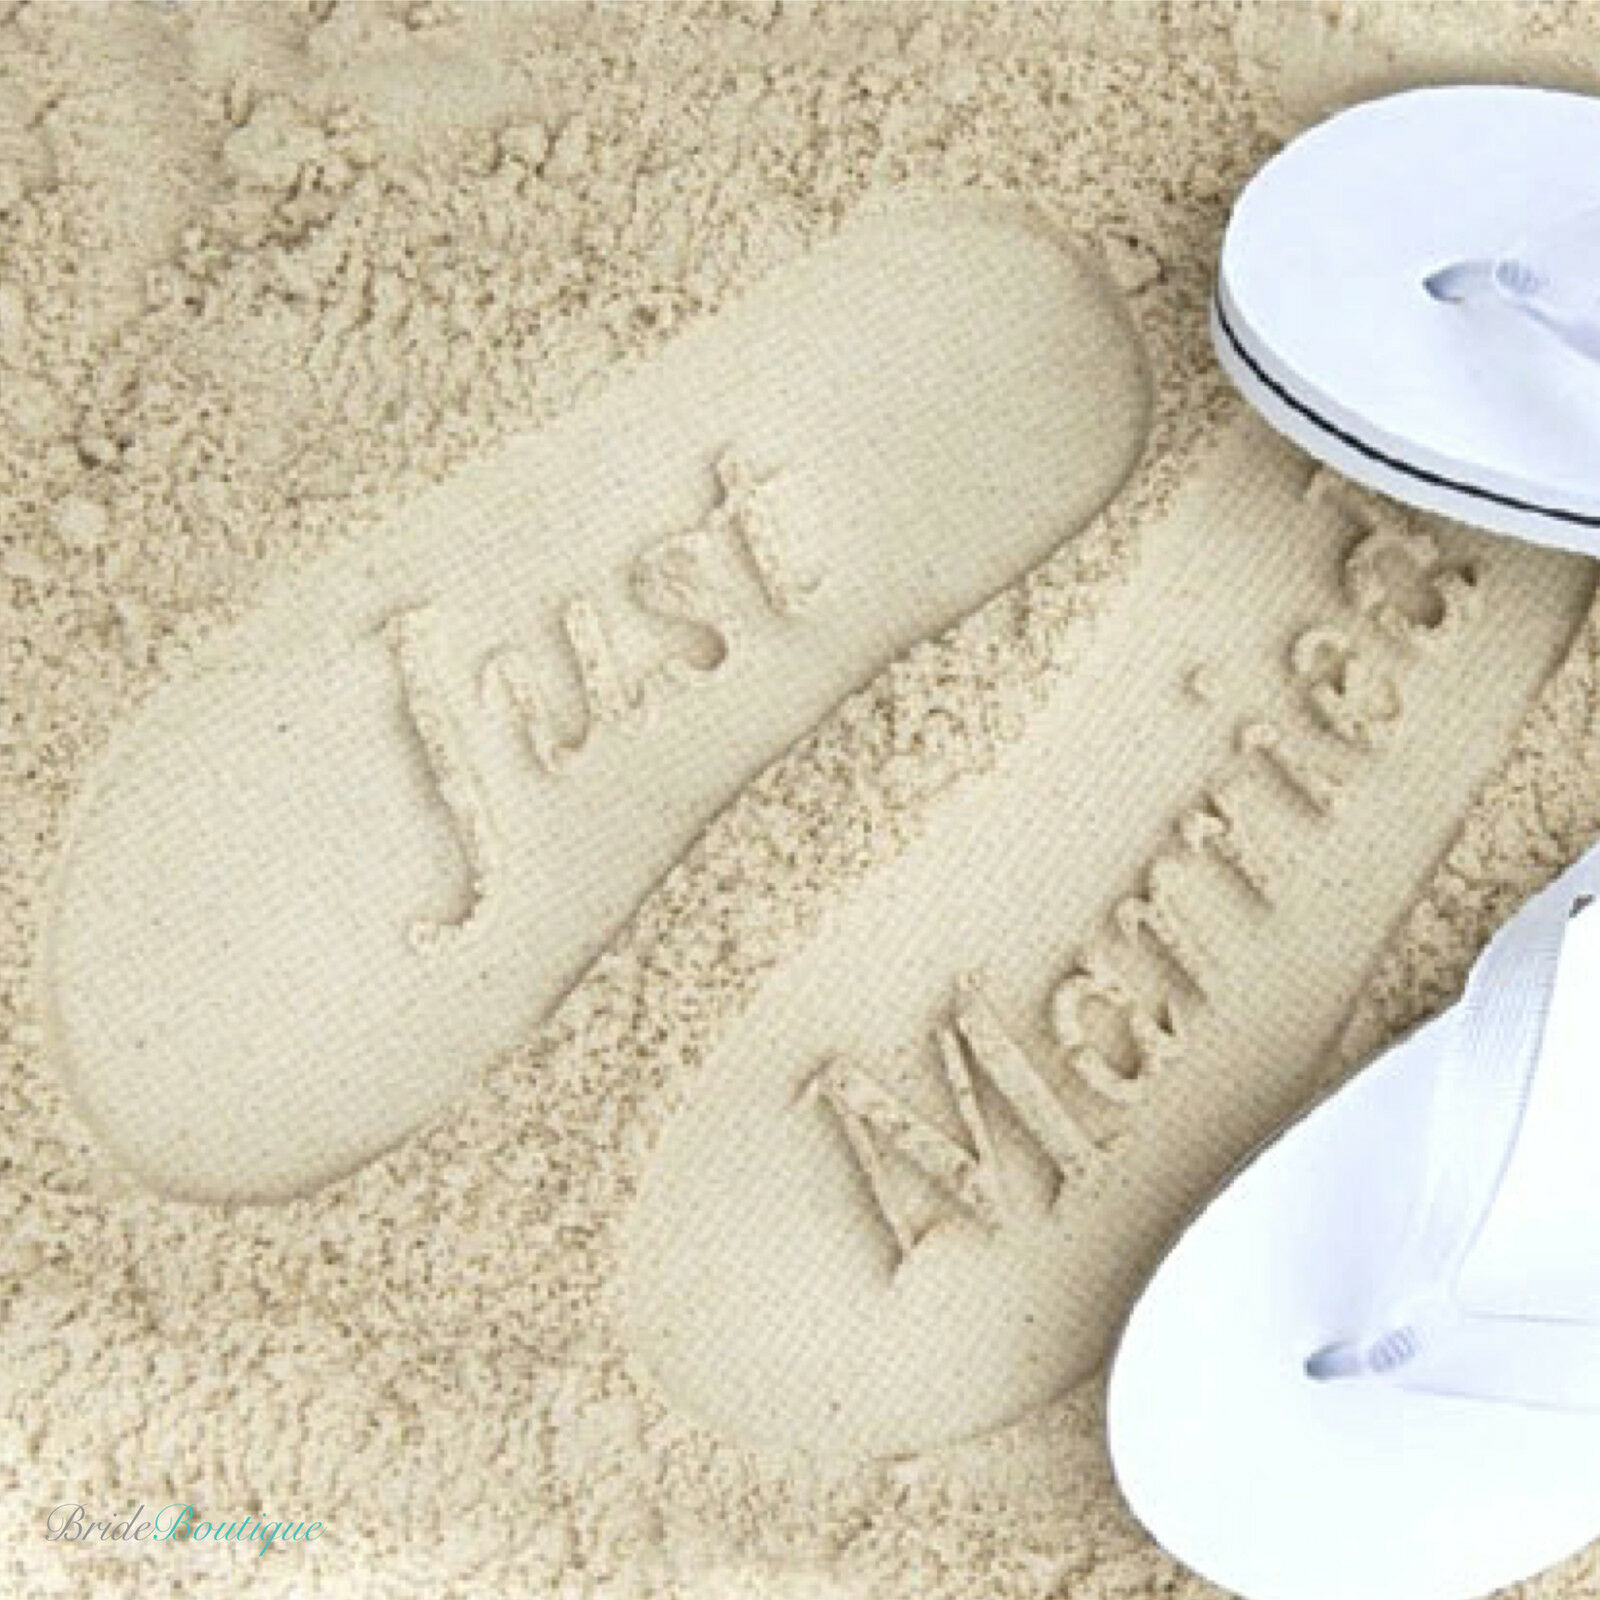 2b67dbee2ada46 Details about Just Married Mr   Mrs Bride   Groom Wedding Honeymoon Gift Flip  Flops Sandals